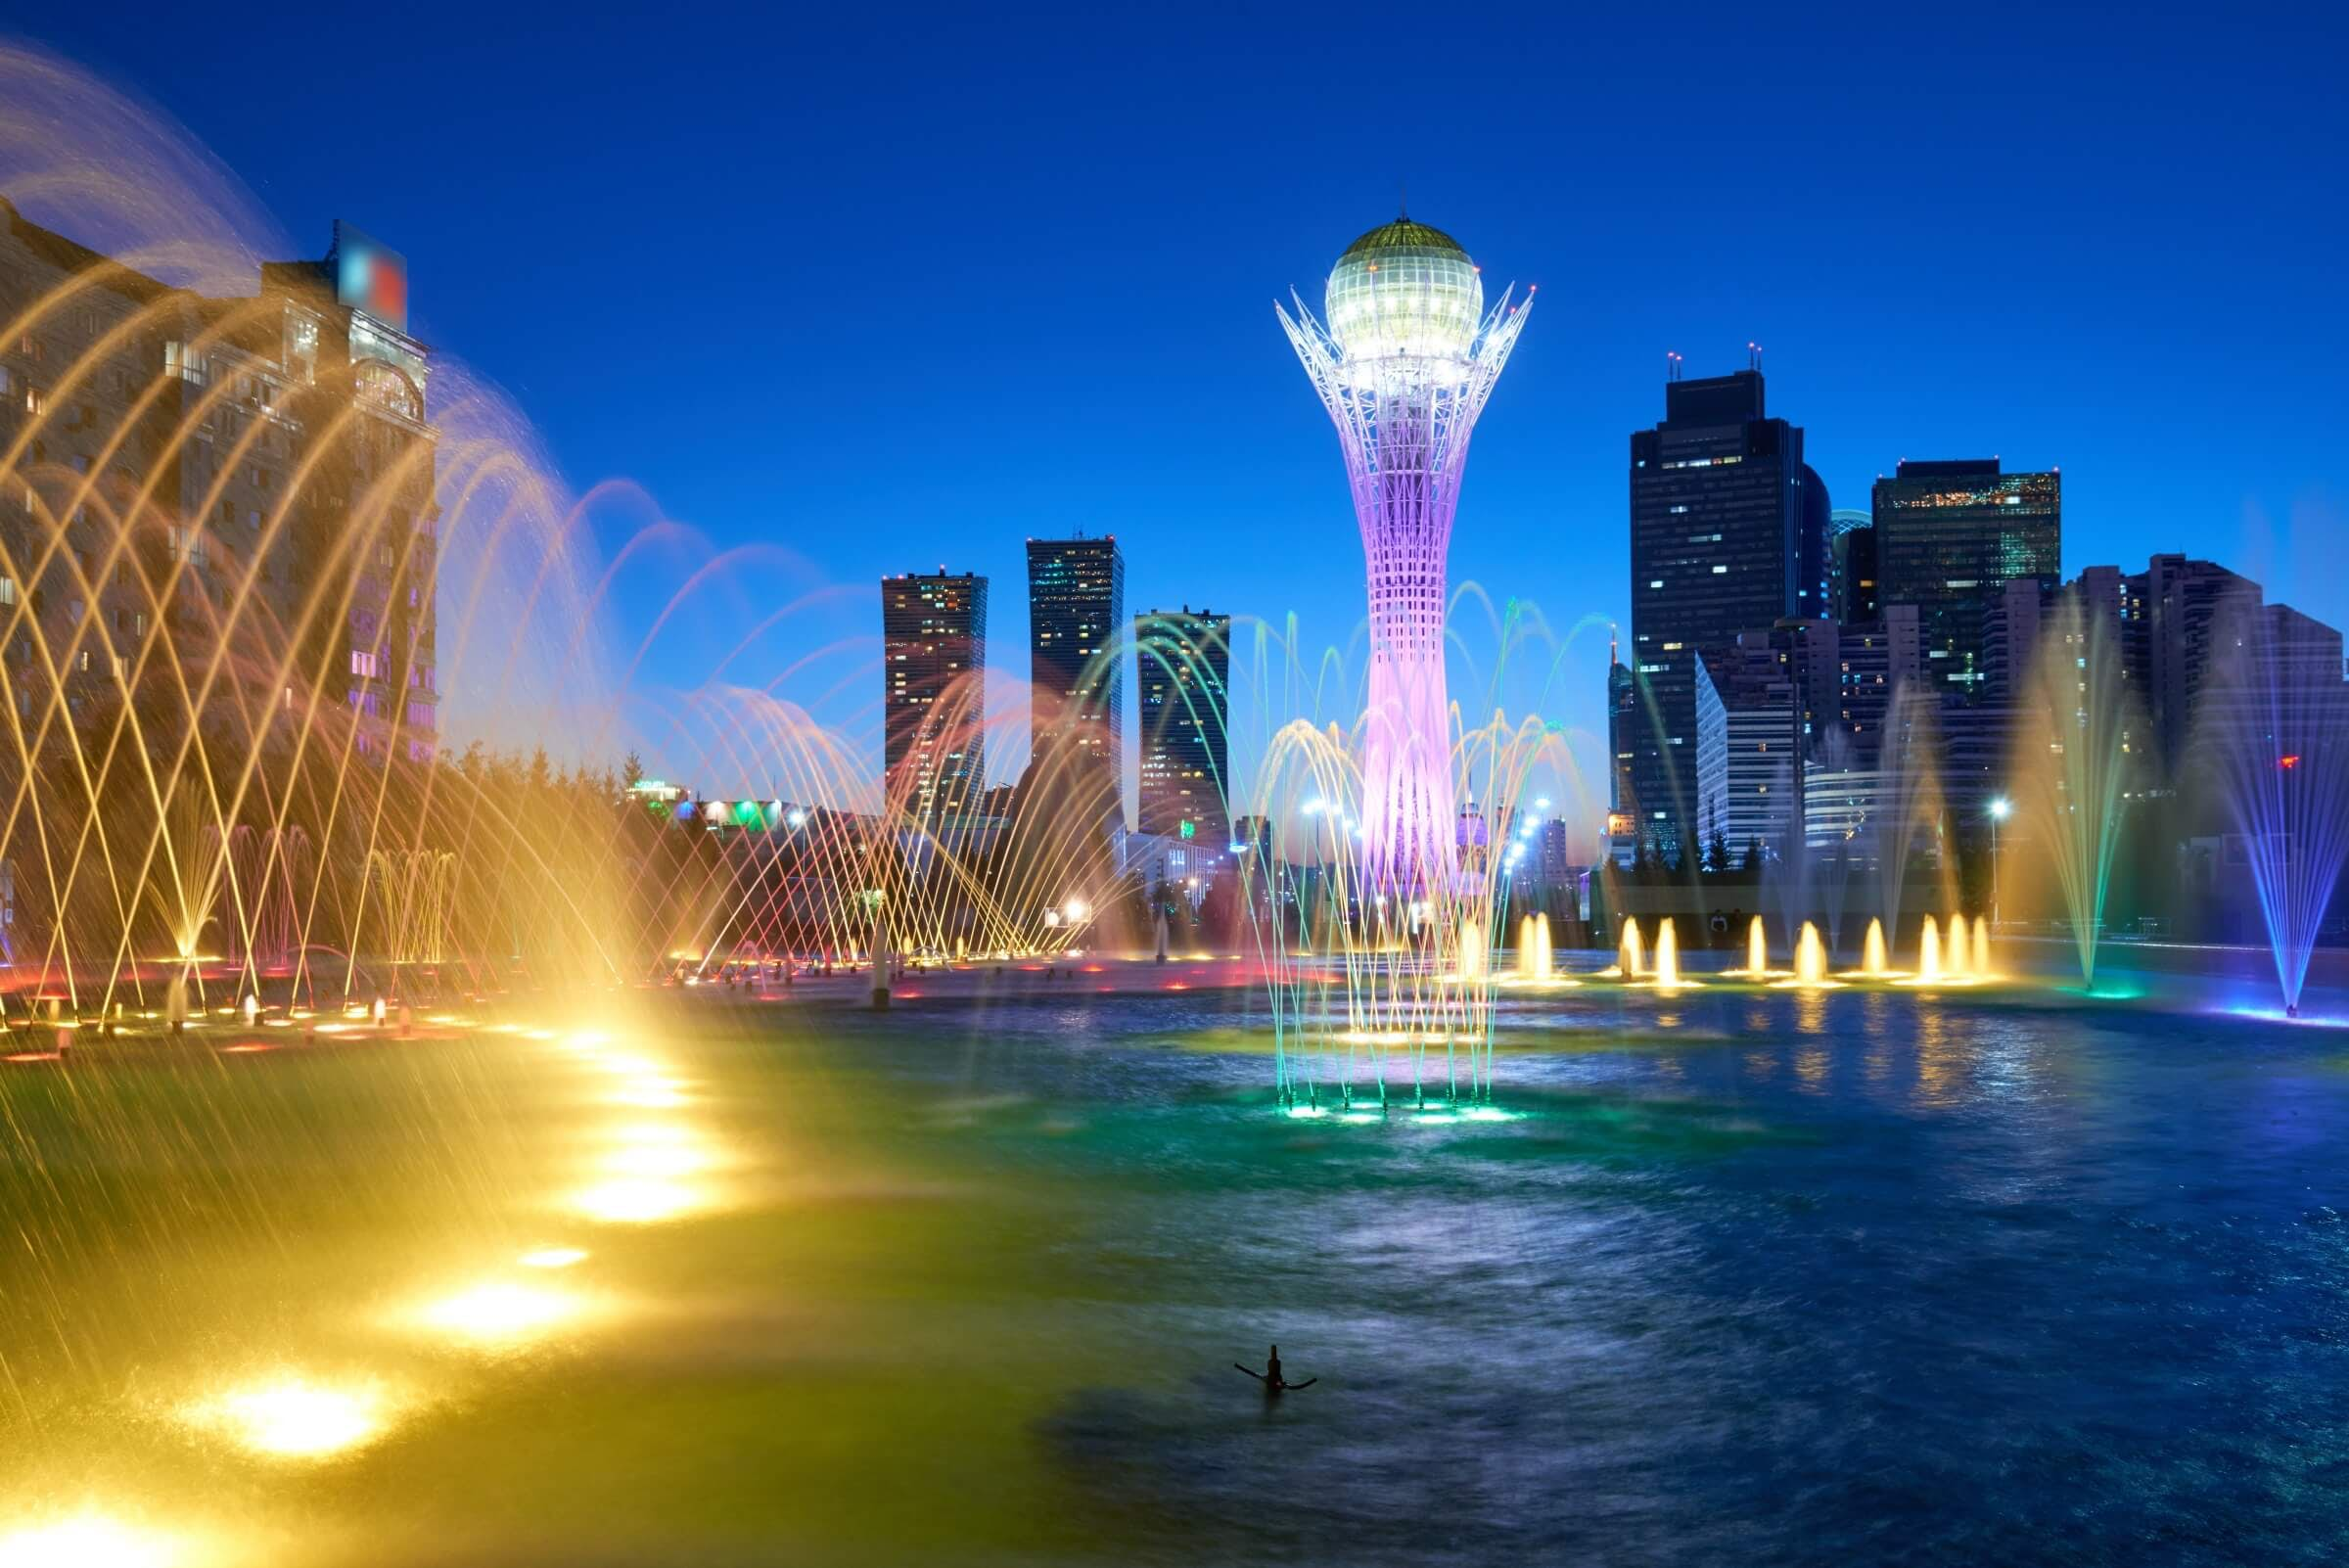 Kazakhstan has given its capital city a brand new name - Lonely Planet